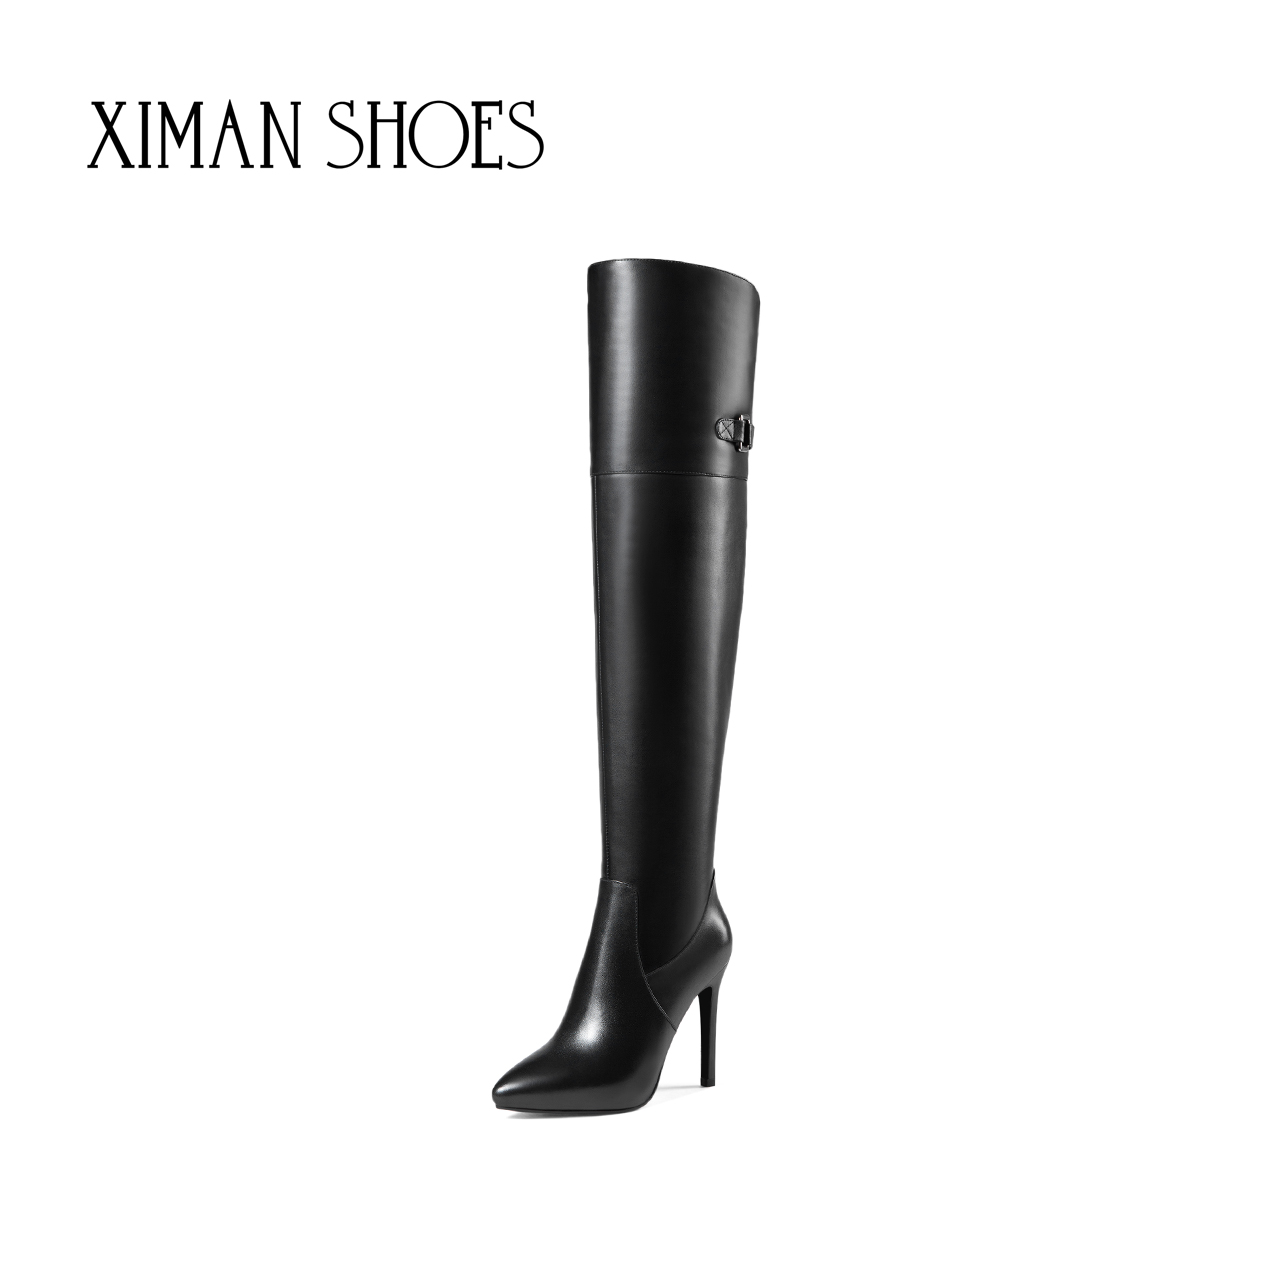 Ximan 2020 autumn and winter new leather sexy high heels knee high boots women's pointed high boots thin heels women's Boots